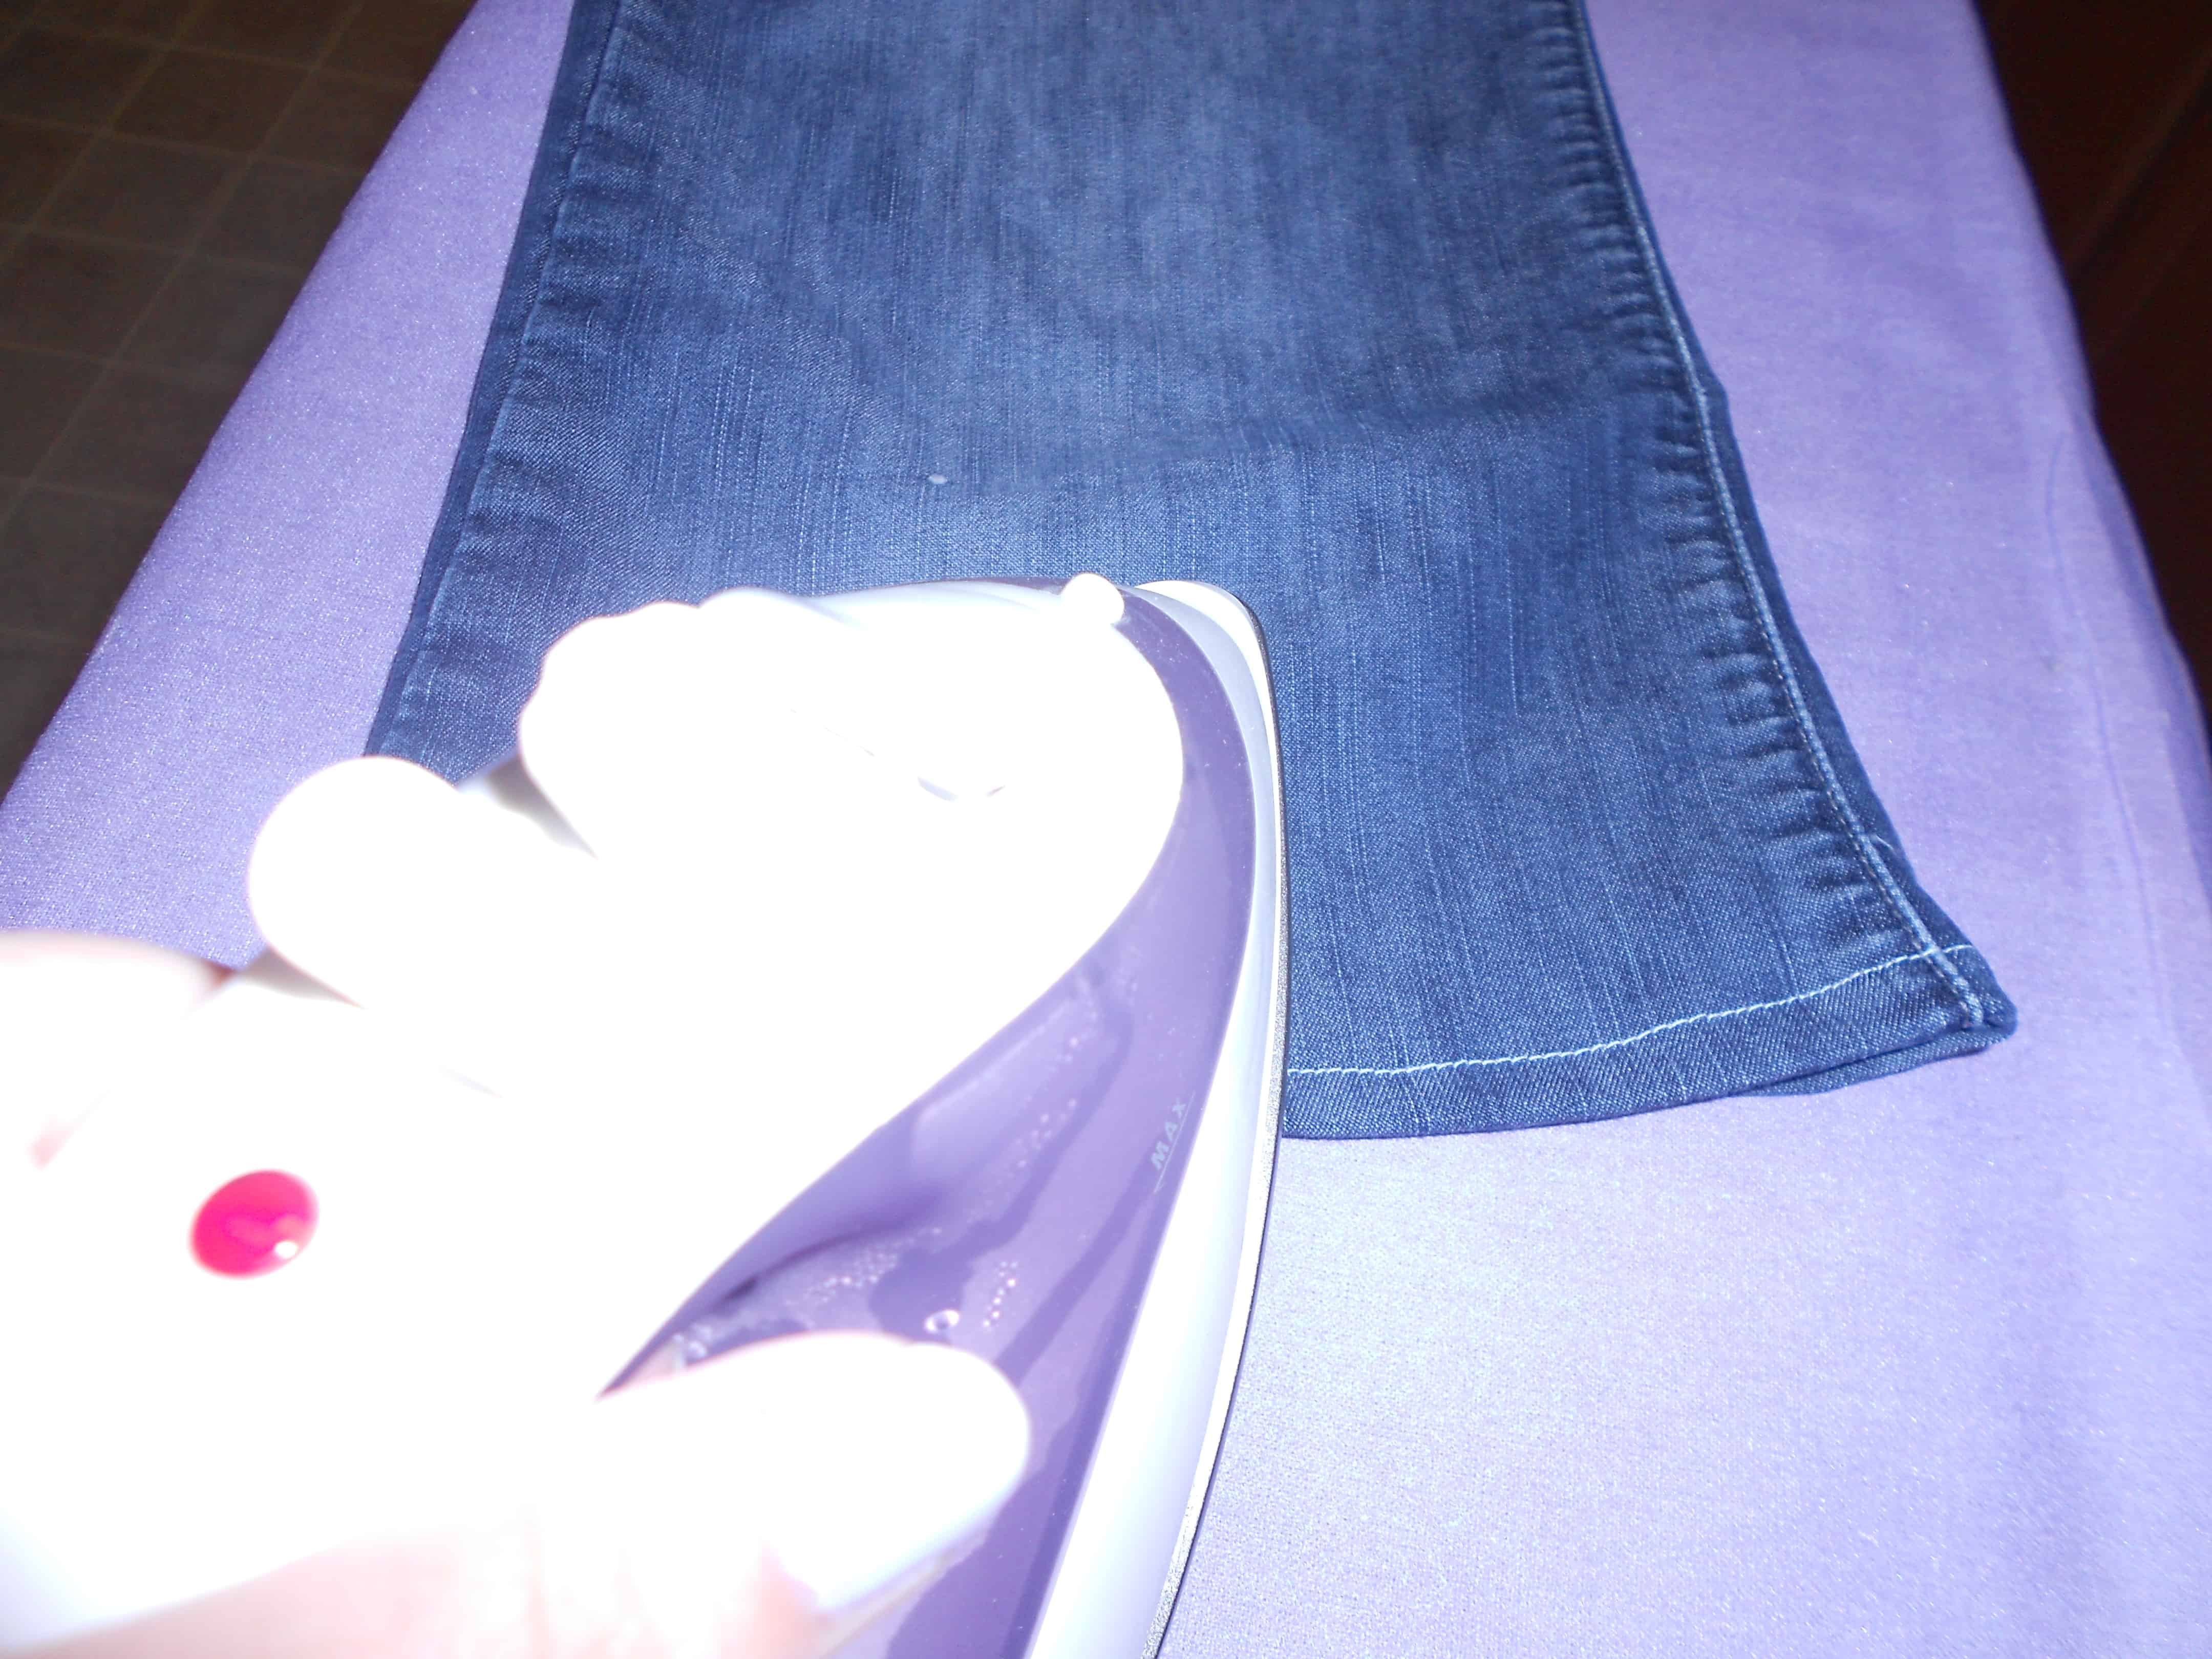 ironing bottom hem of jeans